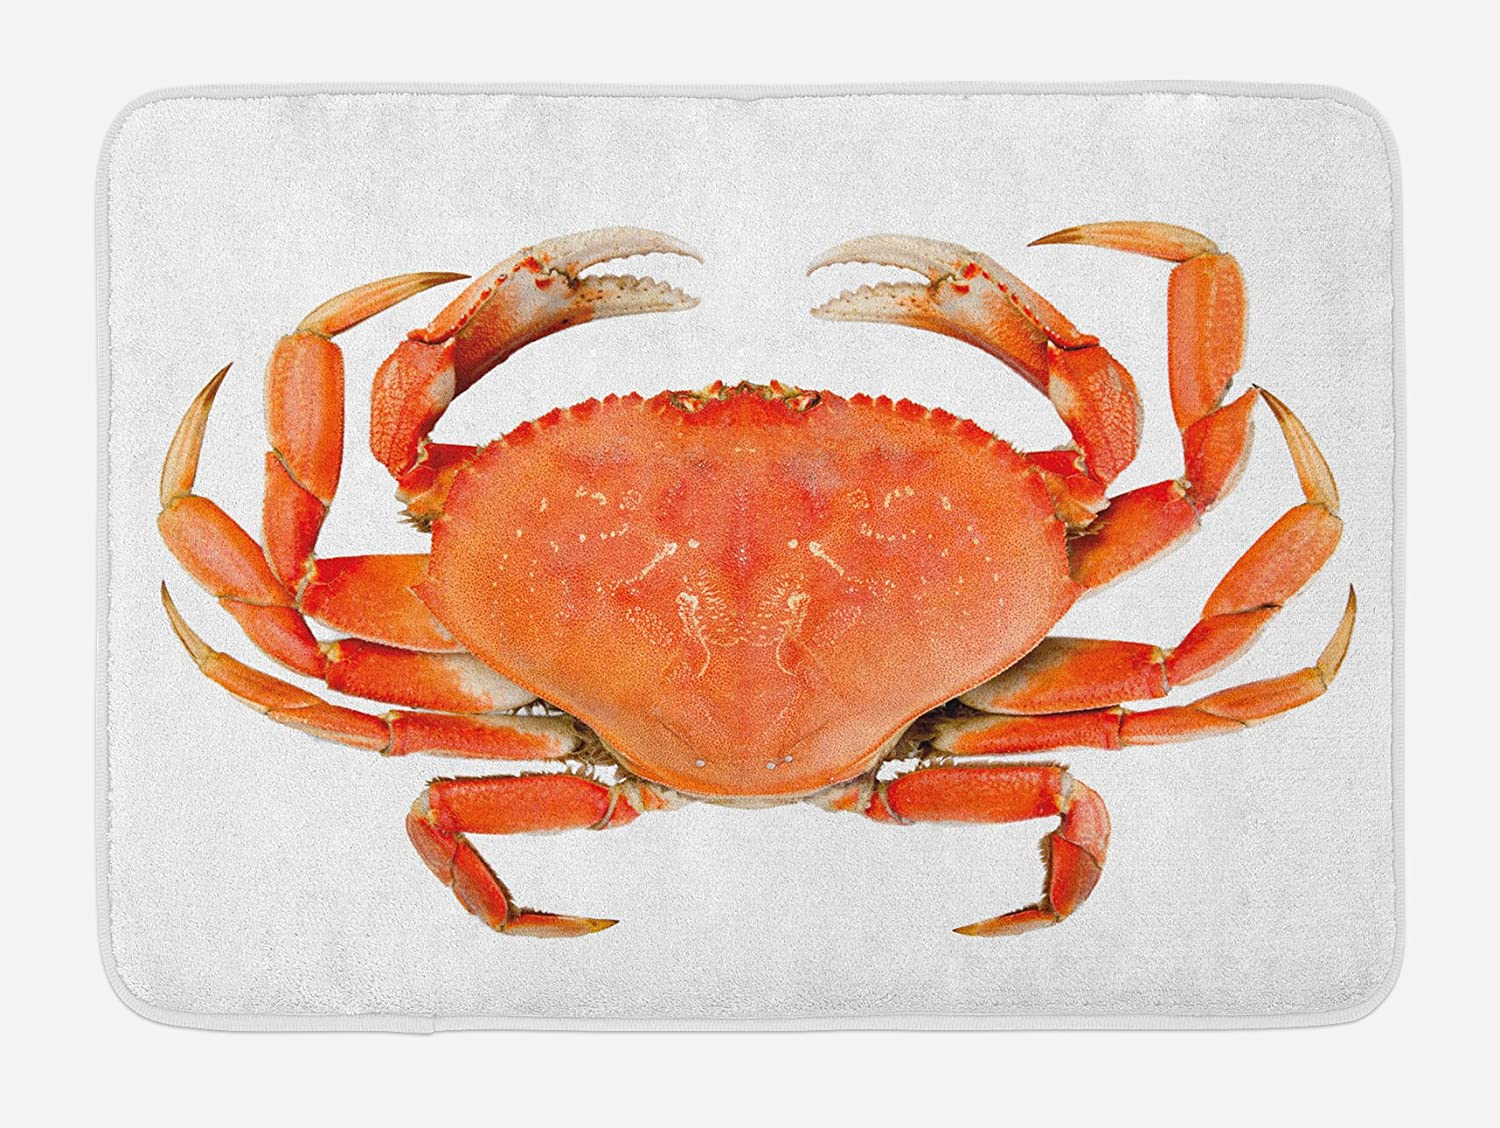 Ambesonne Crabs Bath Mat, Sea Animals Theme a Cooked Dungeness Crab with National Marks Digital Image Print, Plush Bathroom Decor Mat with Non Slip Backing, 29.5